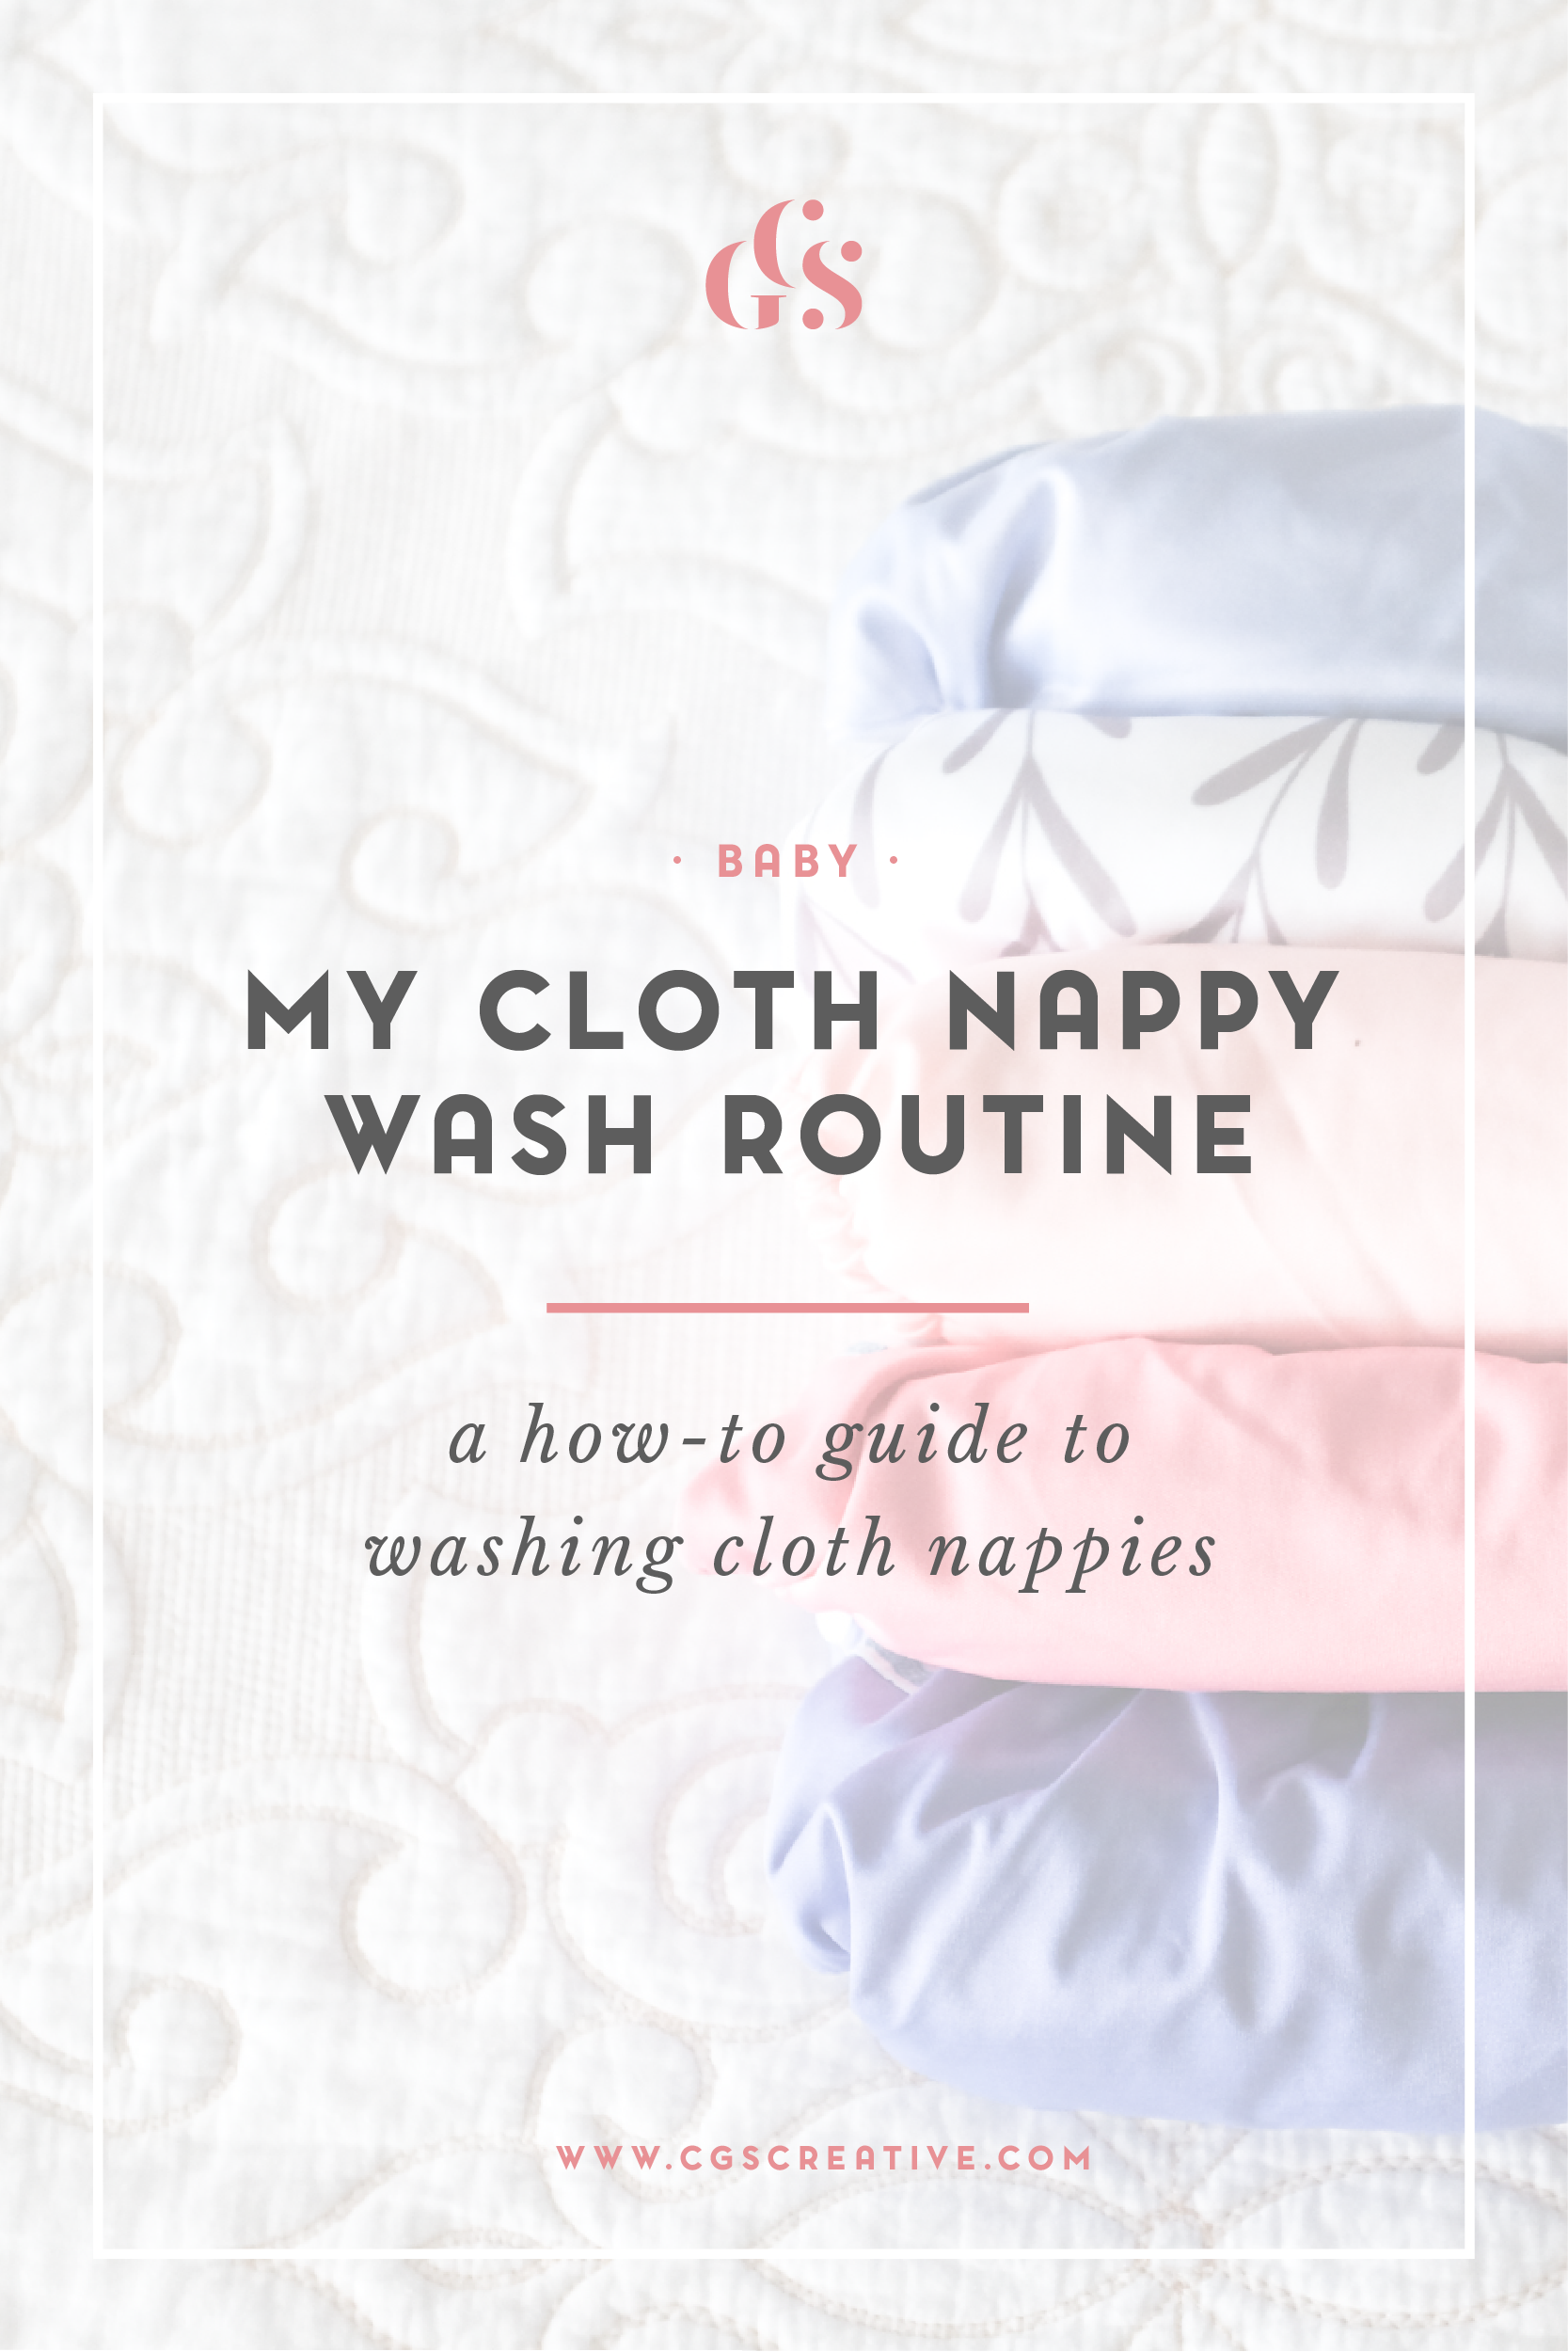 How to wash cloth nappies washing routine for cloth diapers _Artboard 2.png